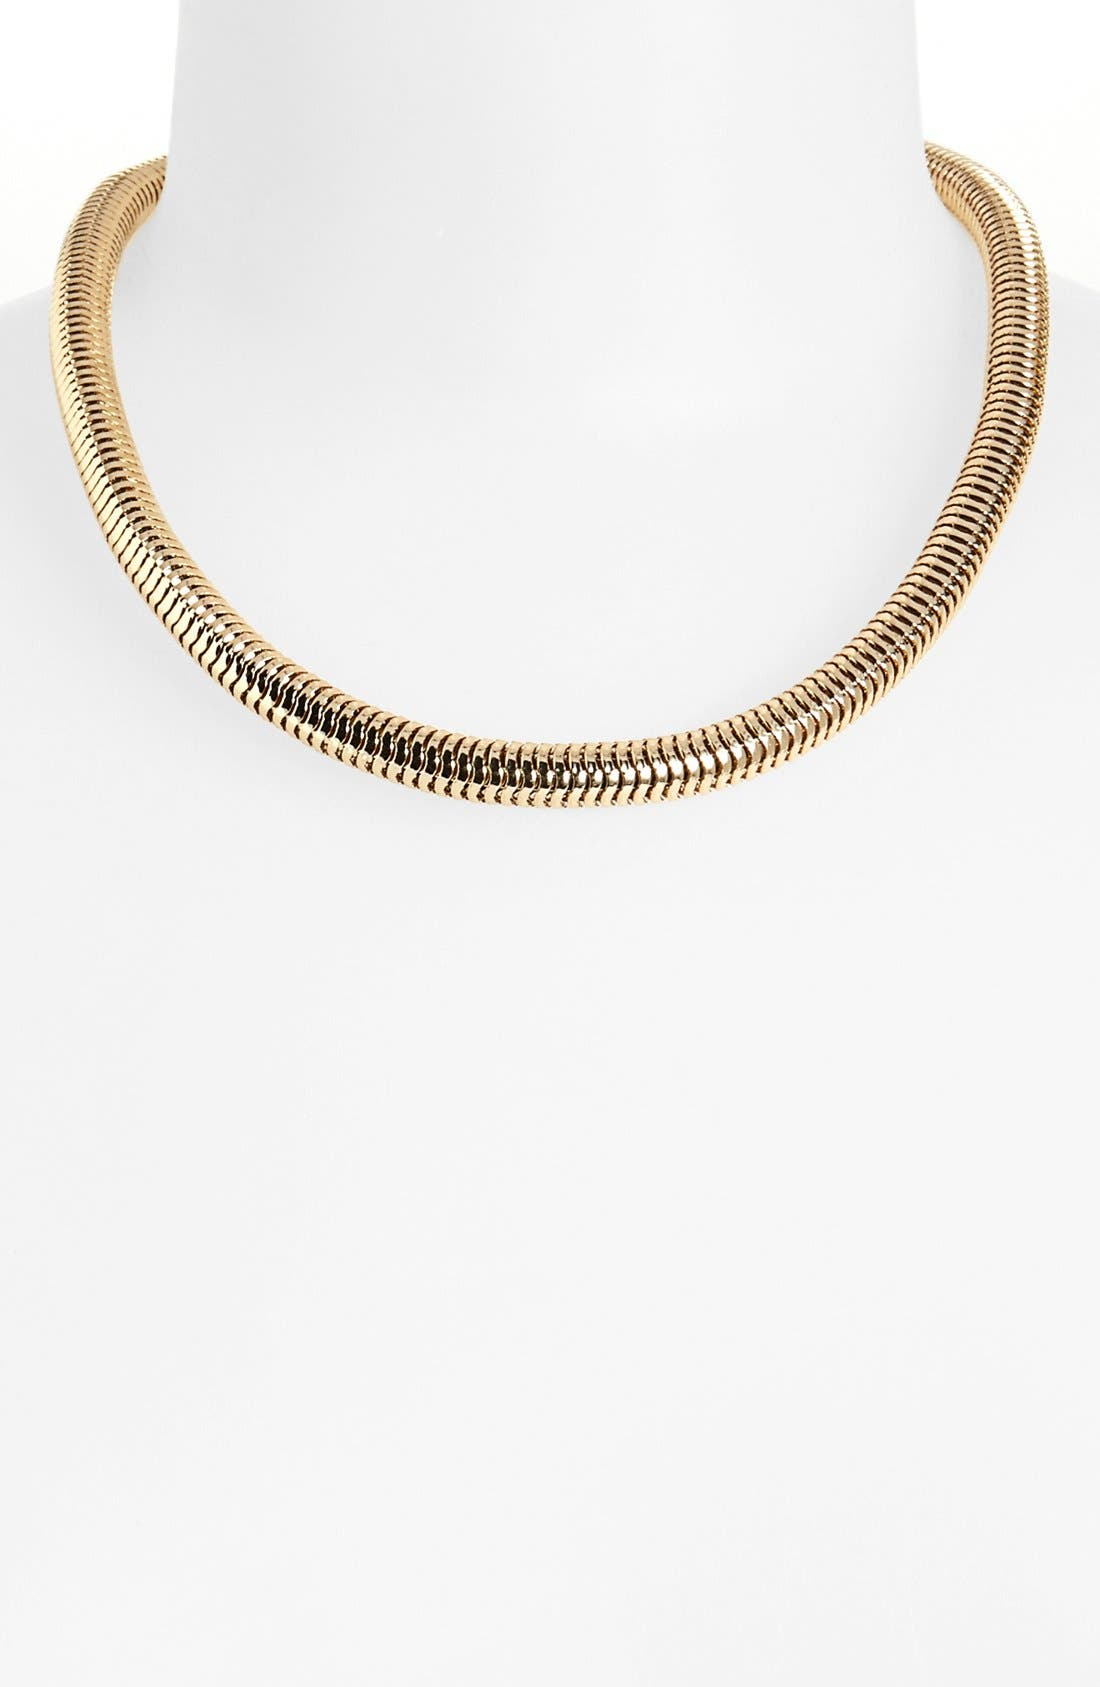 Main Image - Topshop Snake Chain Collar Necklace